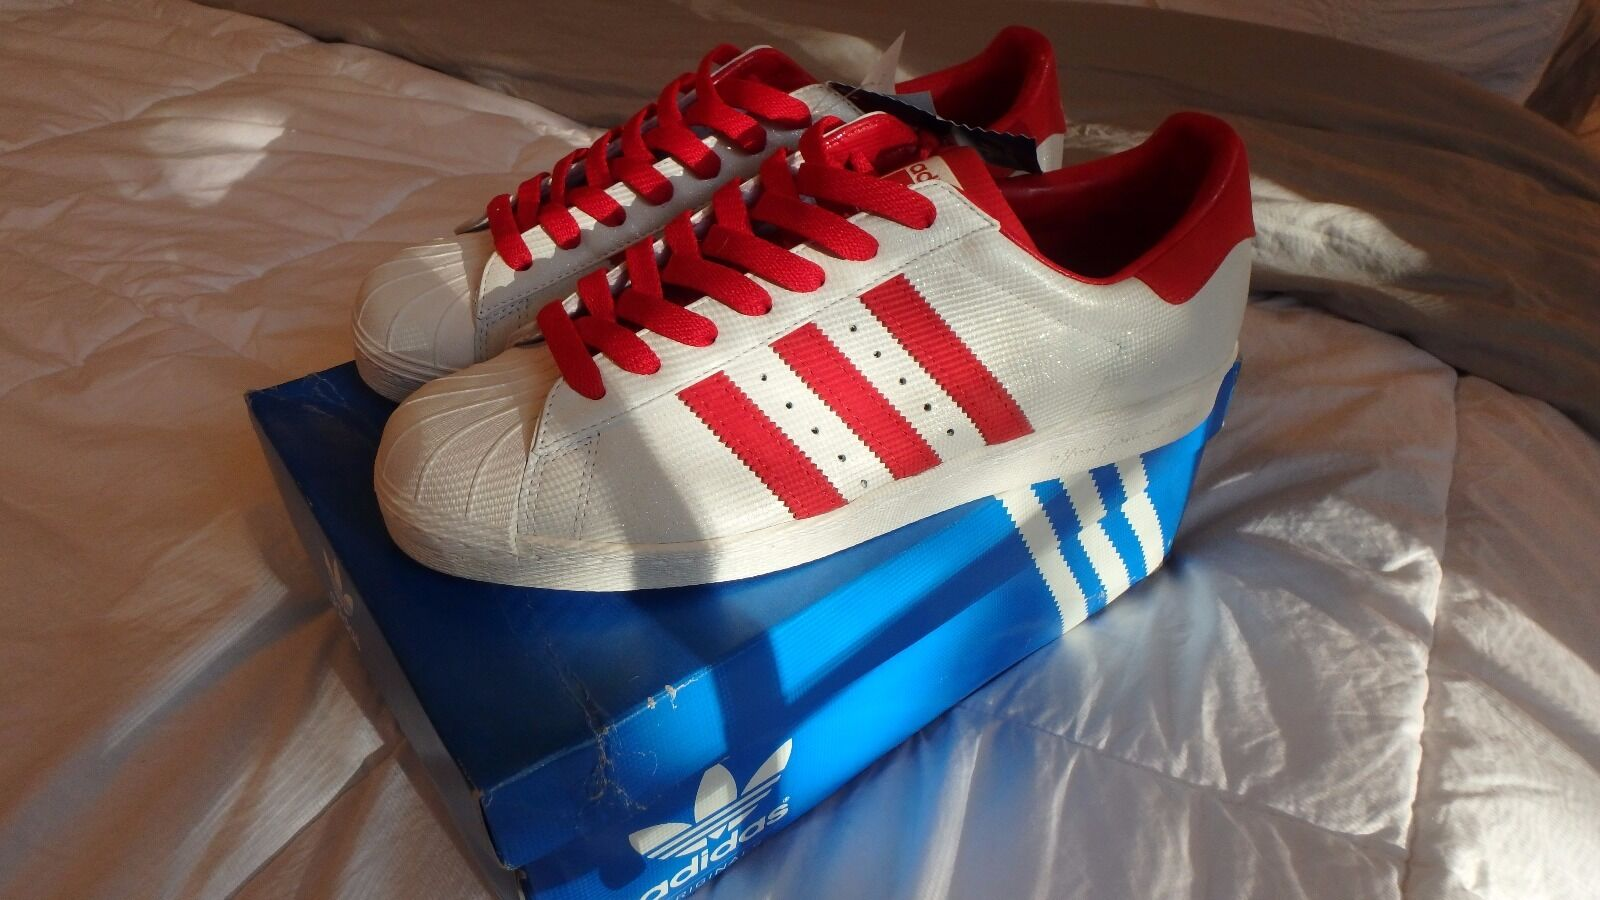 Adidas Superstar and 80s 60 yrs soles and Superstar stripes Size 12 Art 901977 Date 11/08 NWT db5e6b